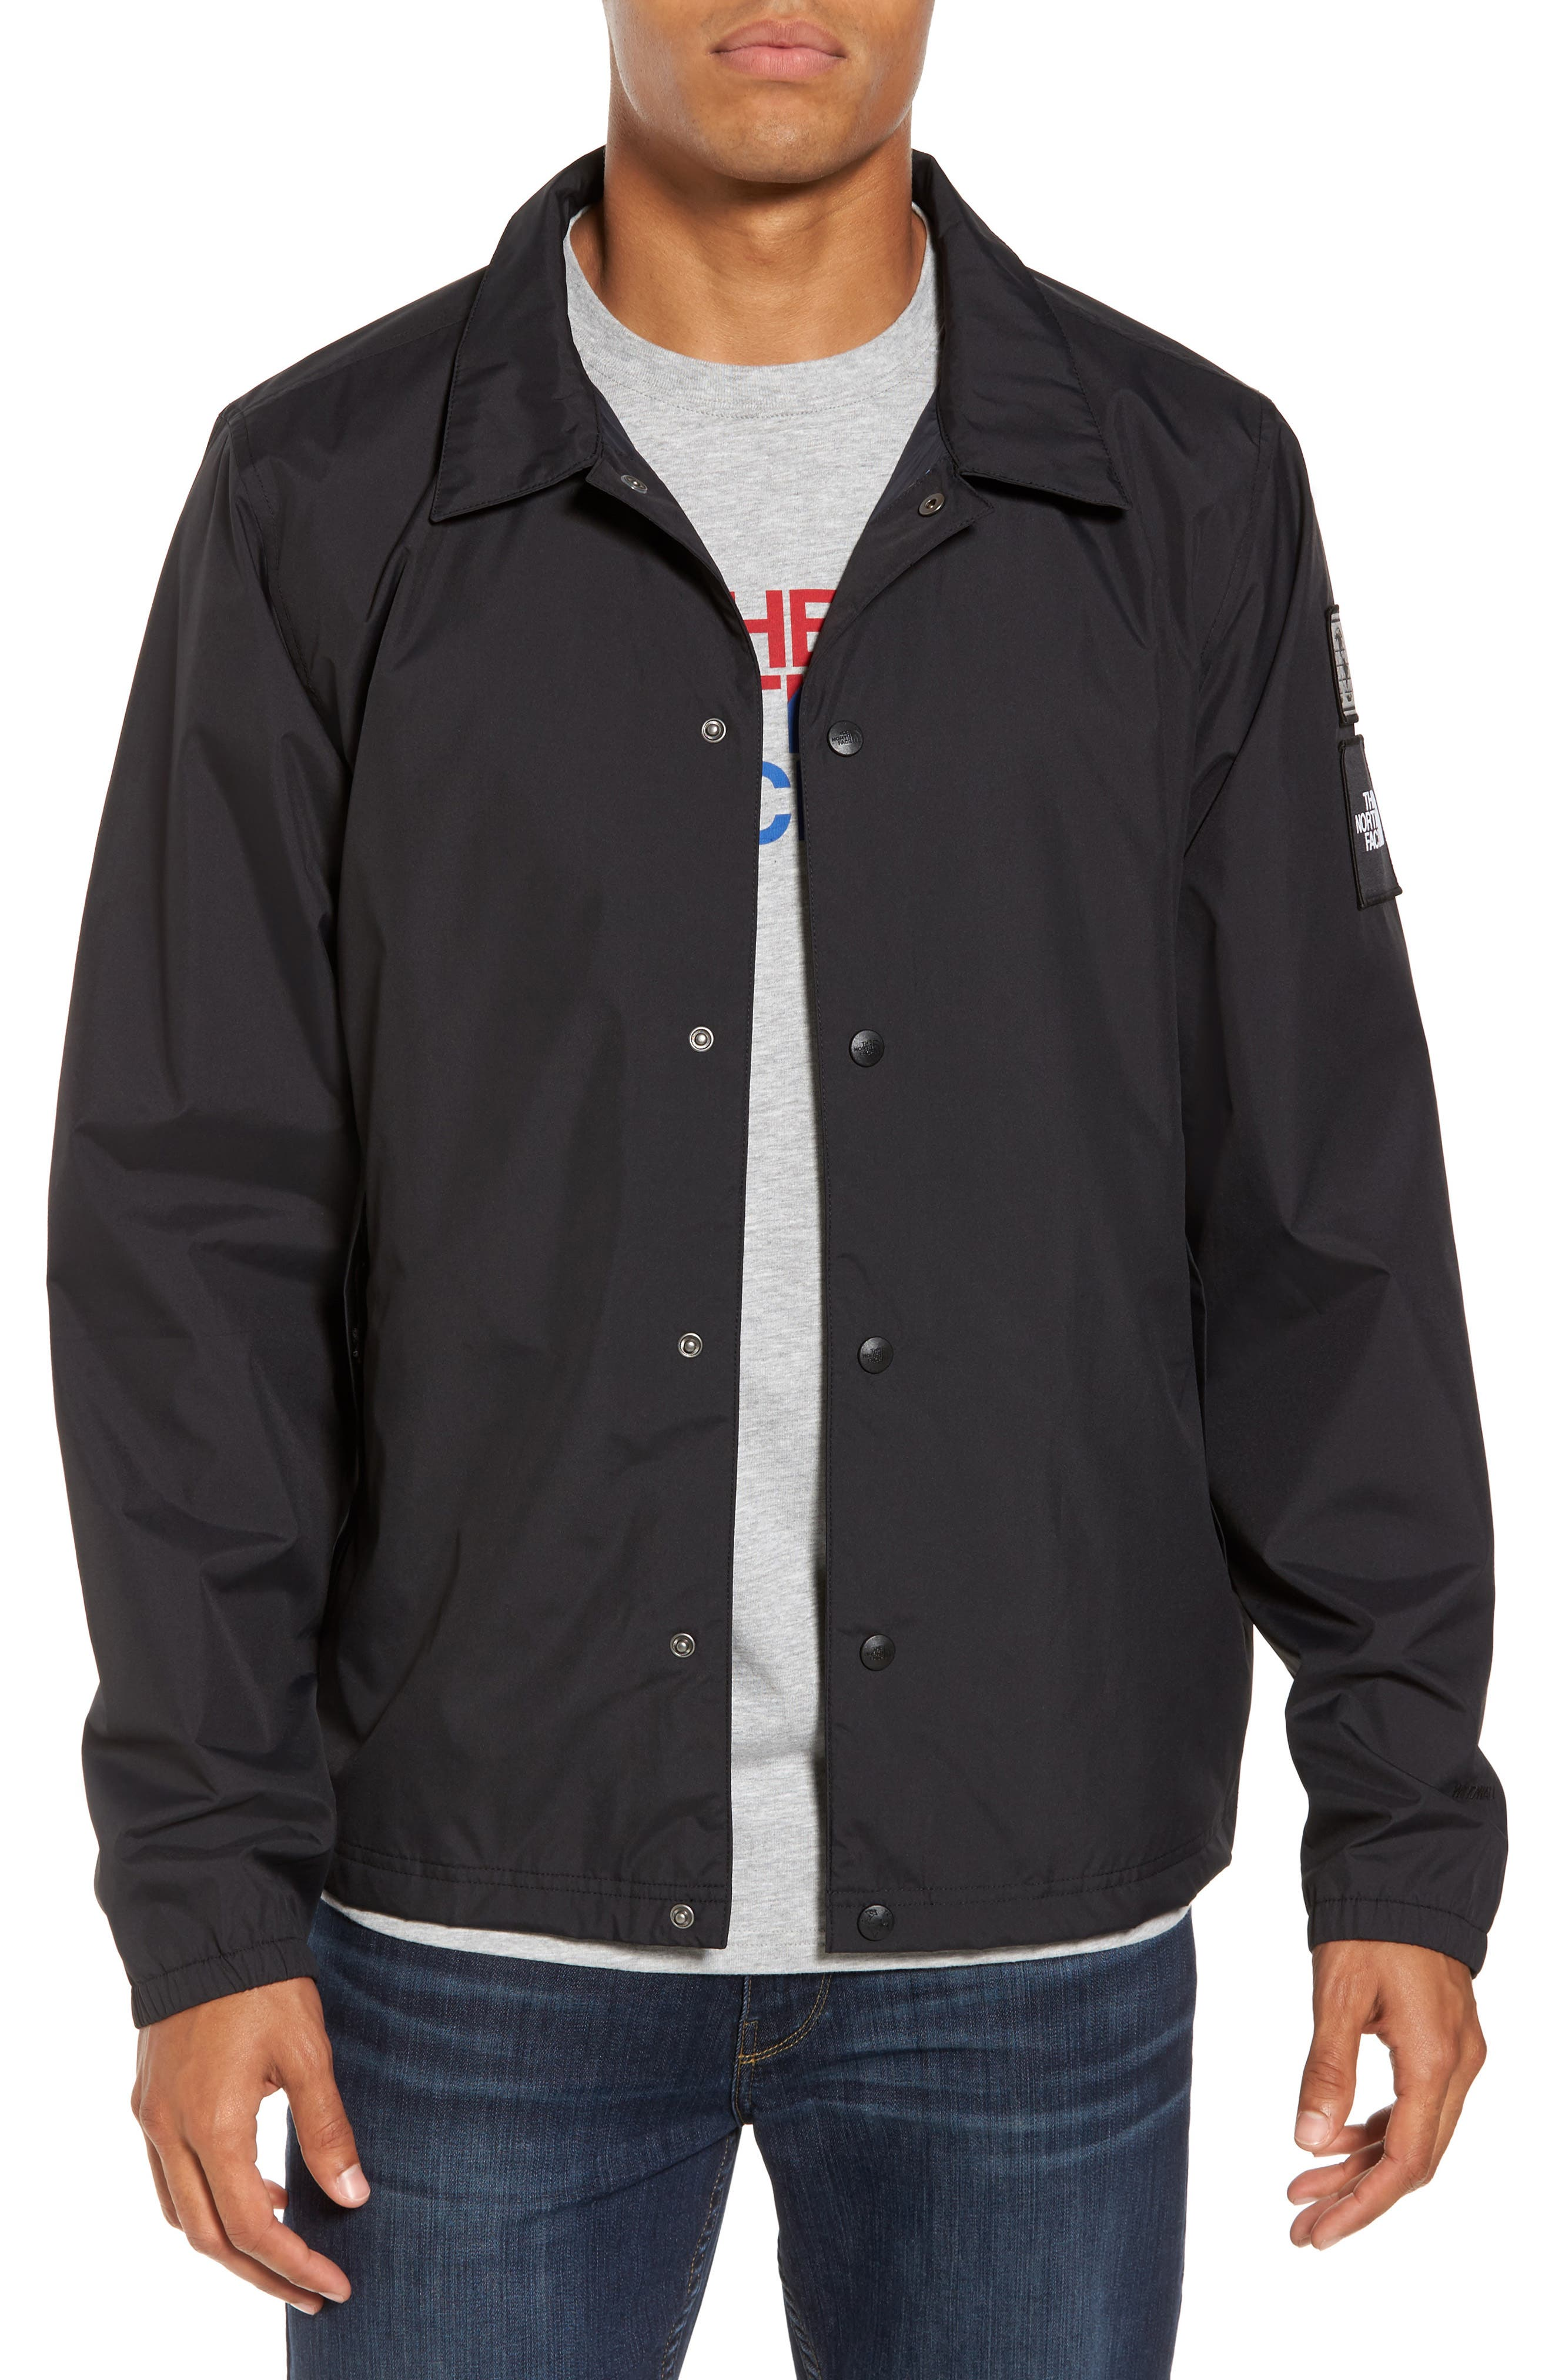 International Collection Coach Jacket,                         Main,                         color,